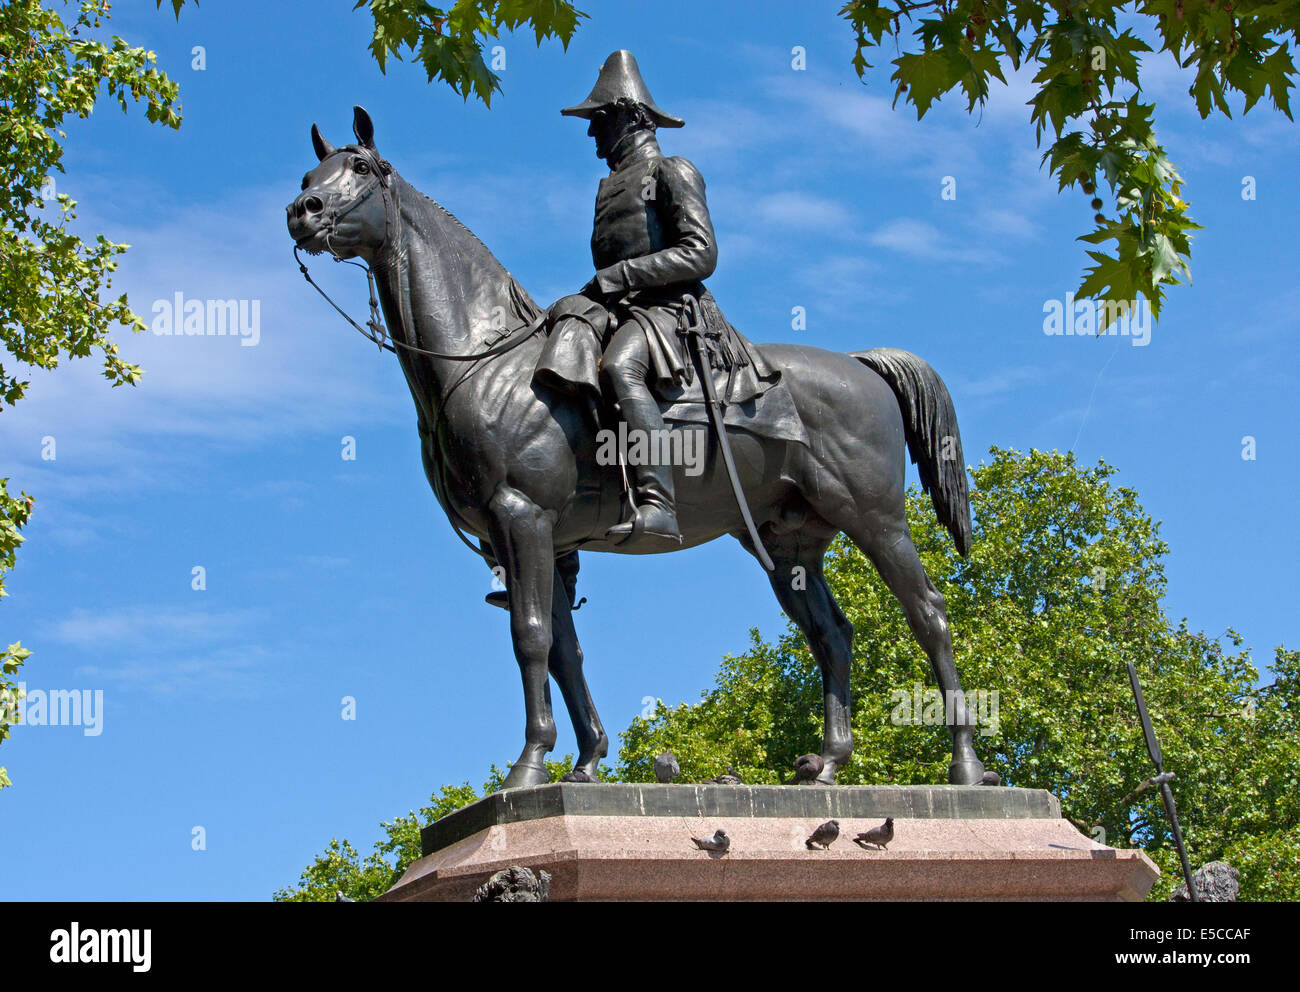 Statue of Arthur Wellesley, 1st Duke of Wellington by J E Boehm, which stands in the corner of Hyde Park opposite - Stock Image